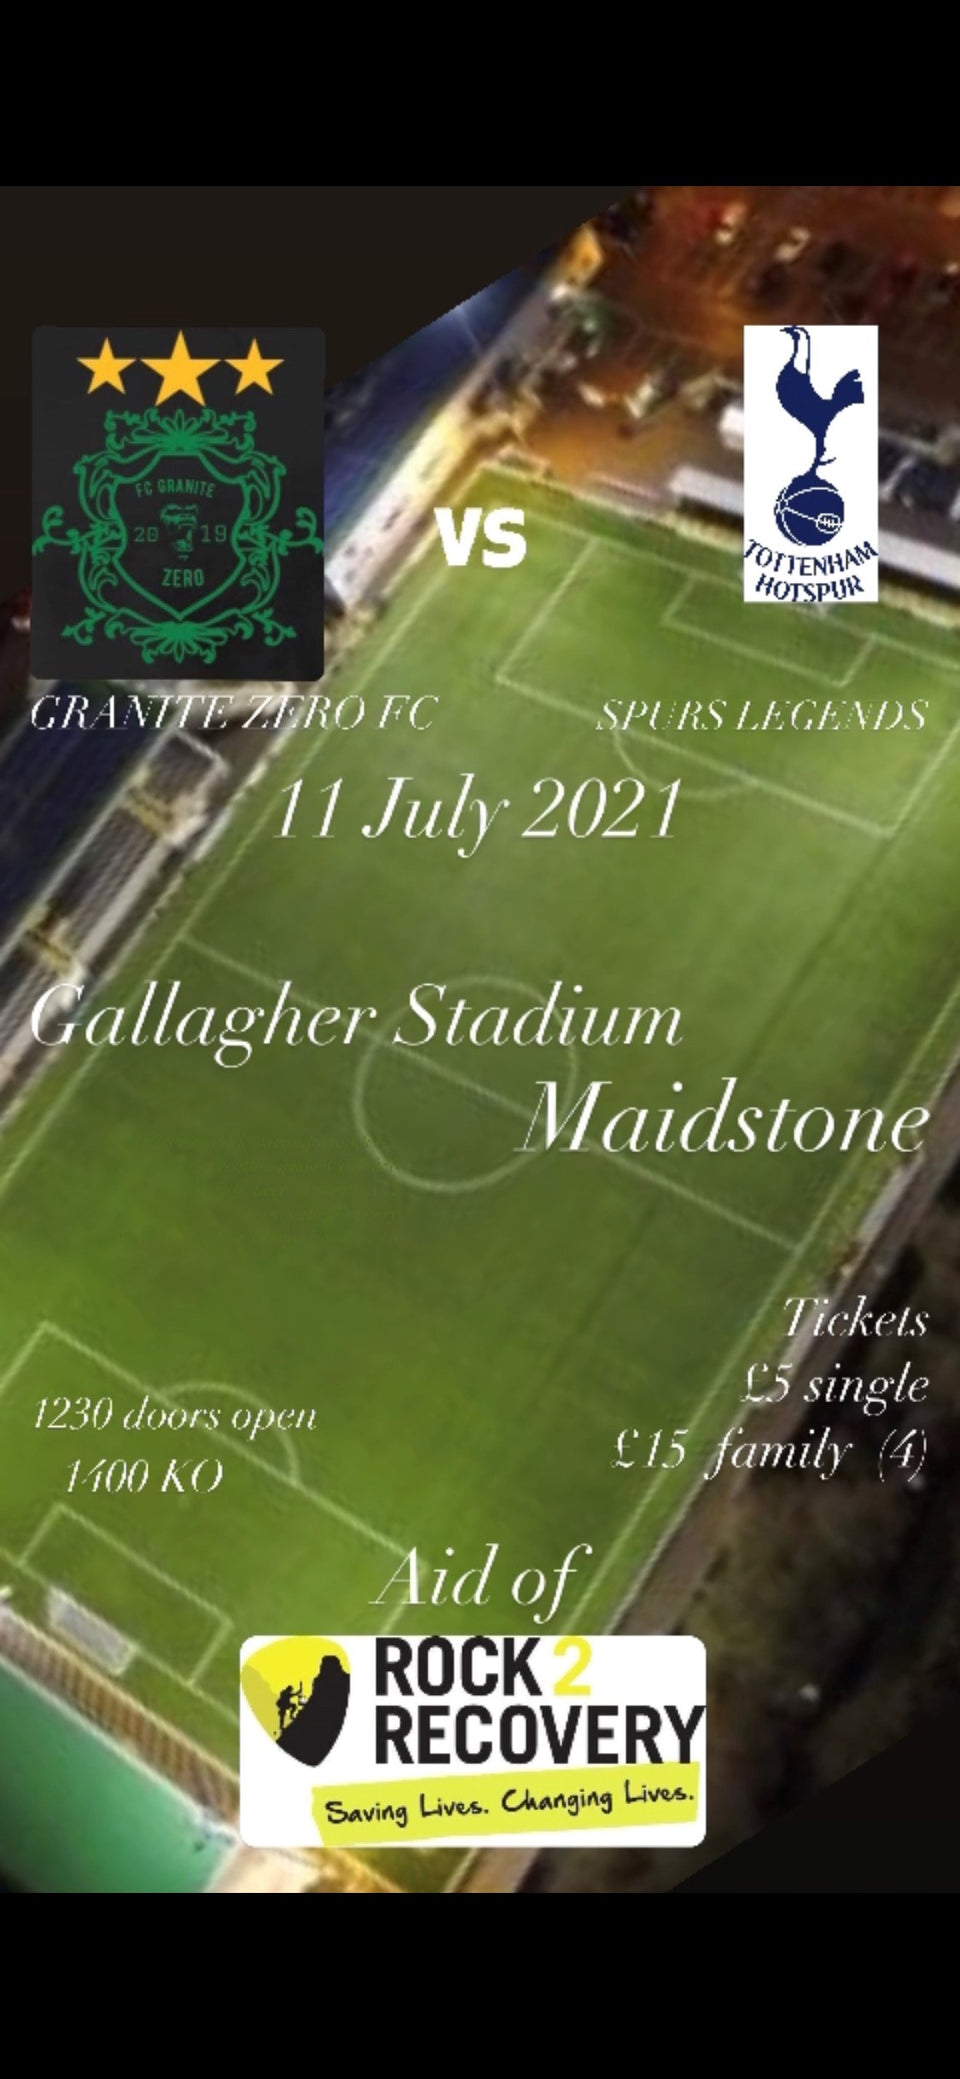 11th July 2021 Granite Zero FC vs Spurs Legends - Galagher Stadium Maidstone